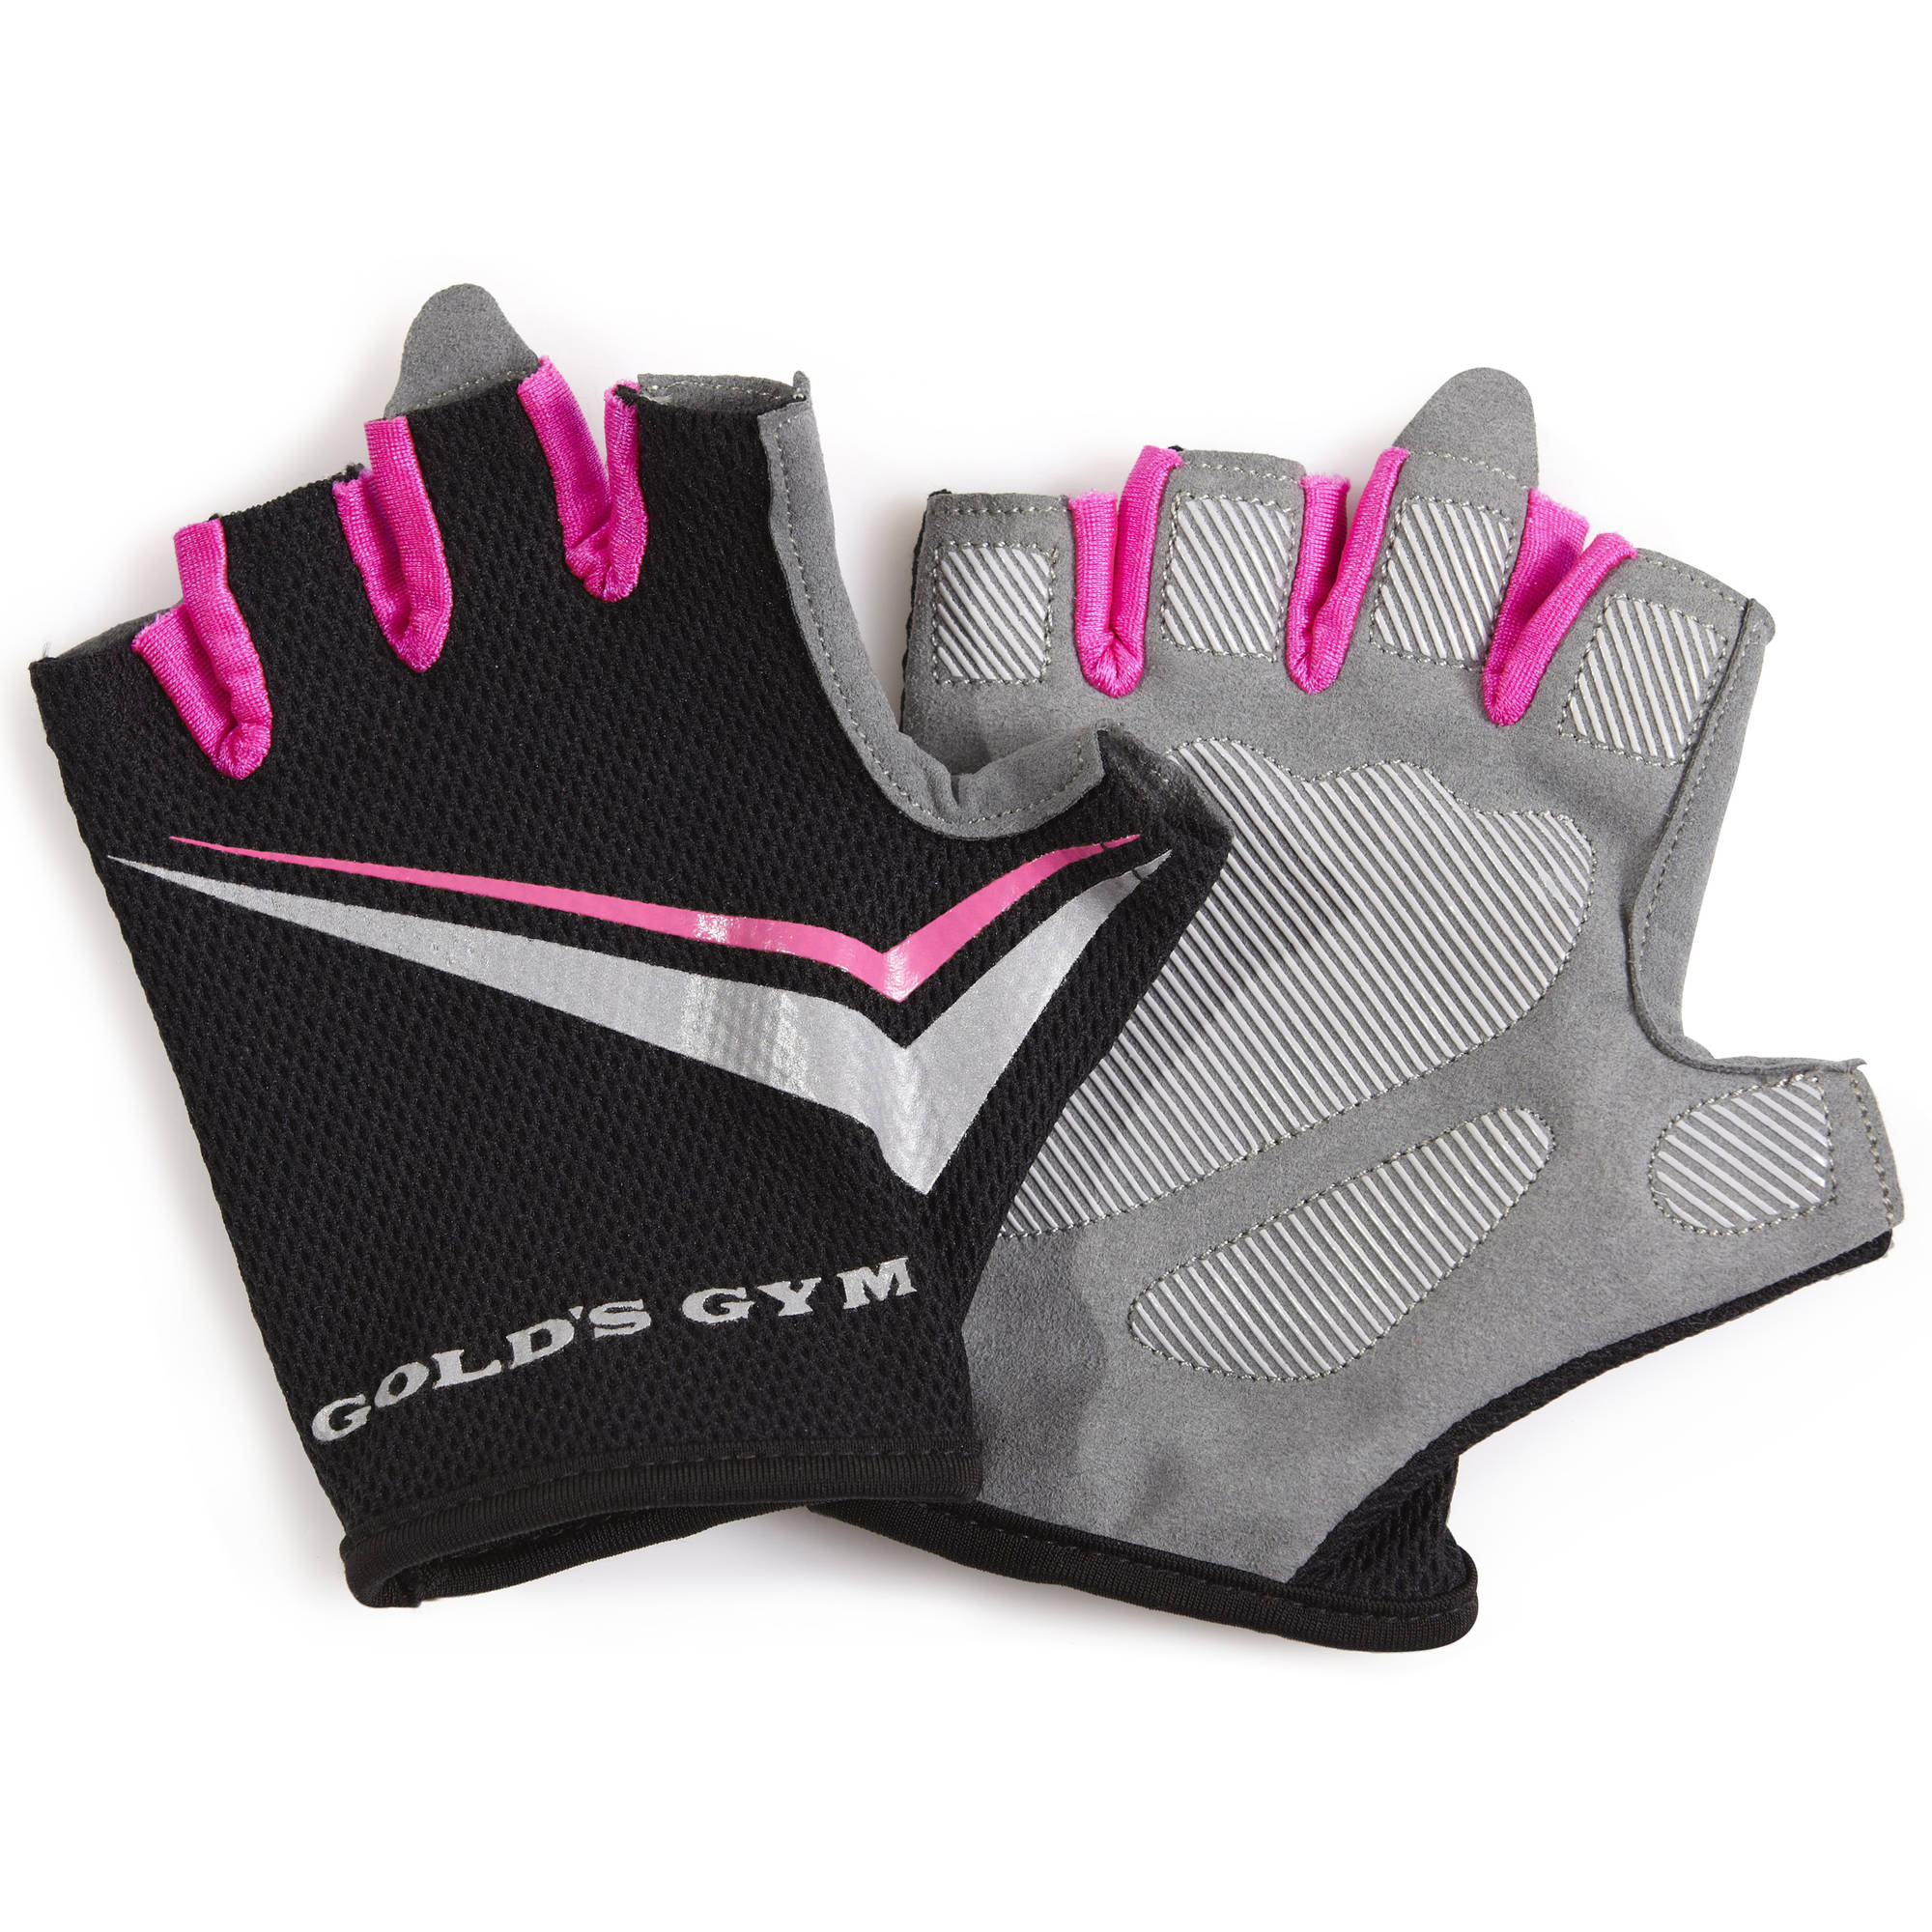 Gold's Gym Women's Tacky Gloves, Pink | Strength Training Accessories